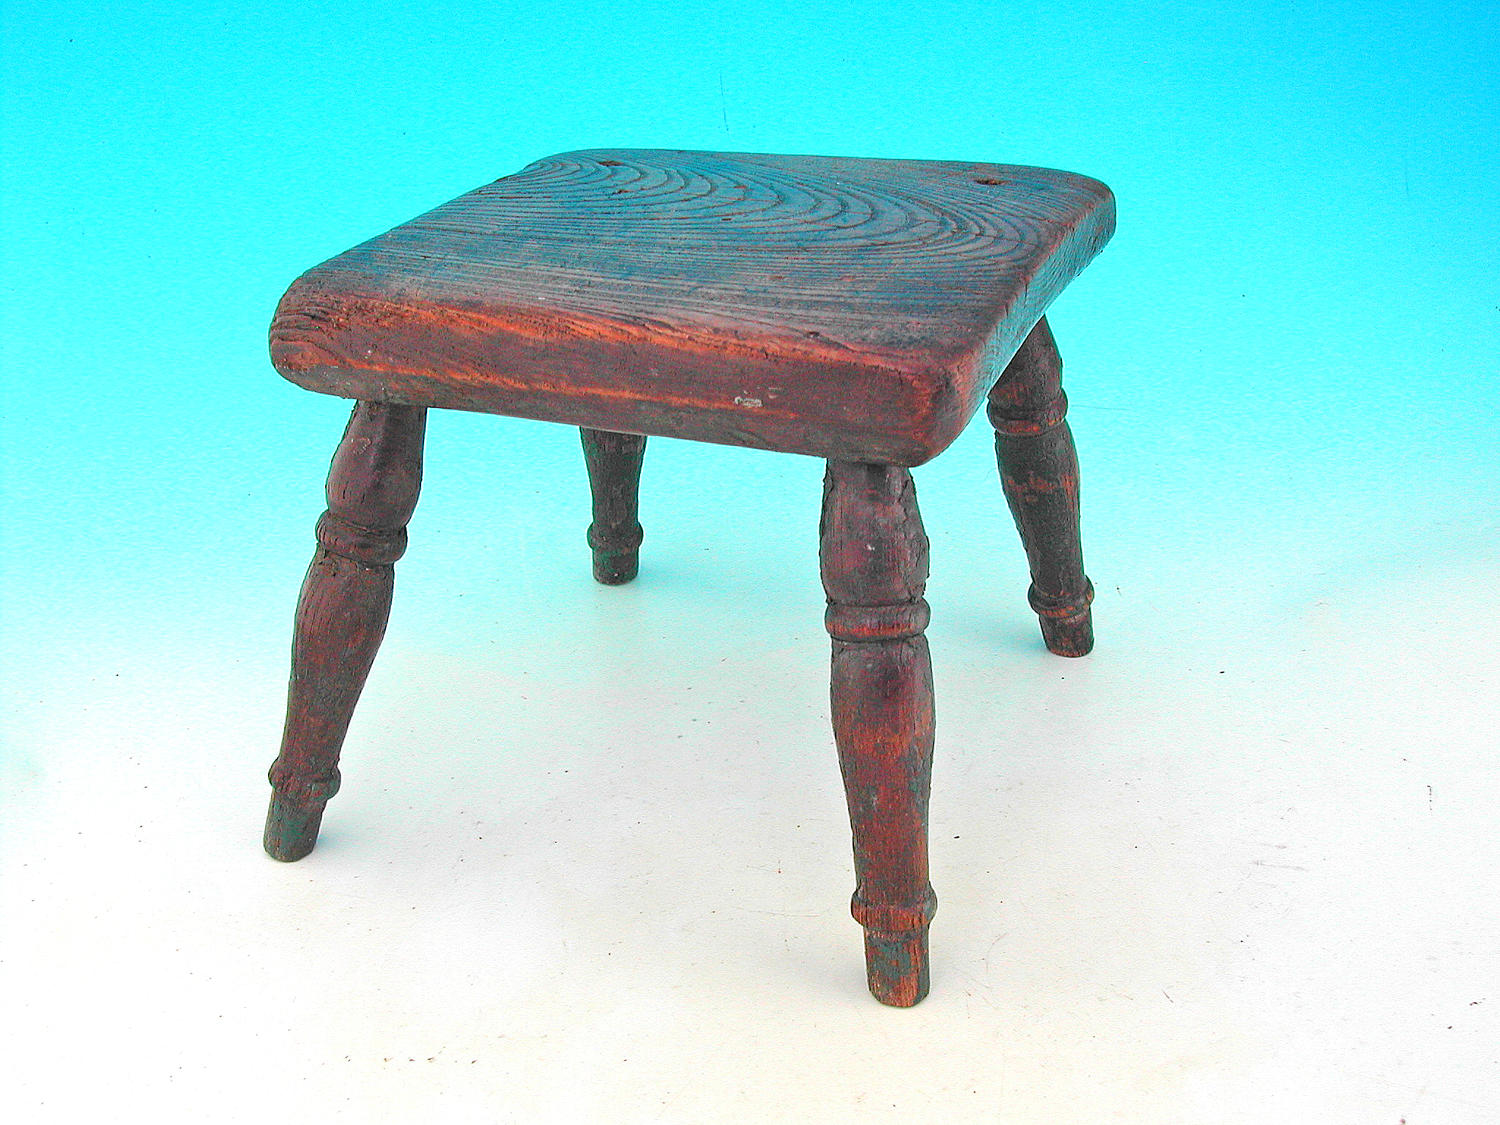 Antique Furniture 19thc Ash & Elm Painted Stool.  English  C1840 - 60